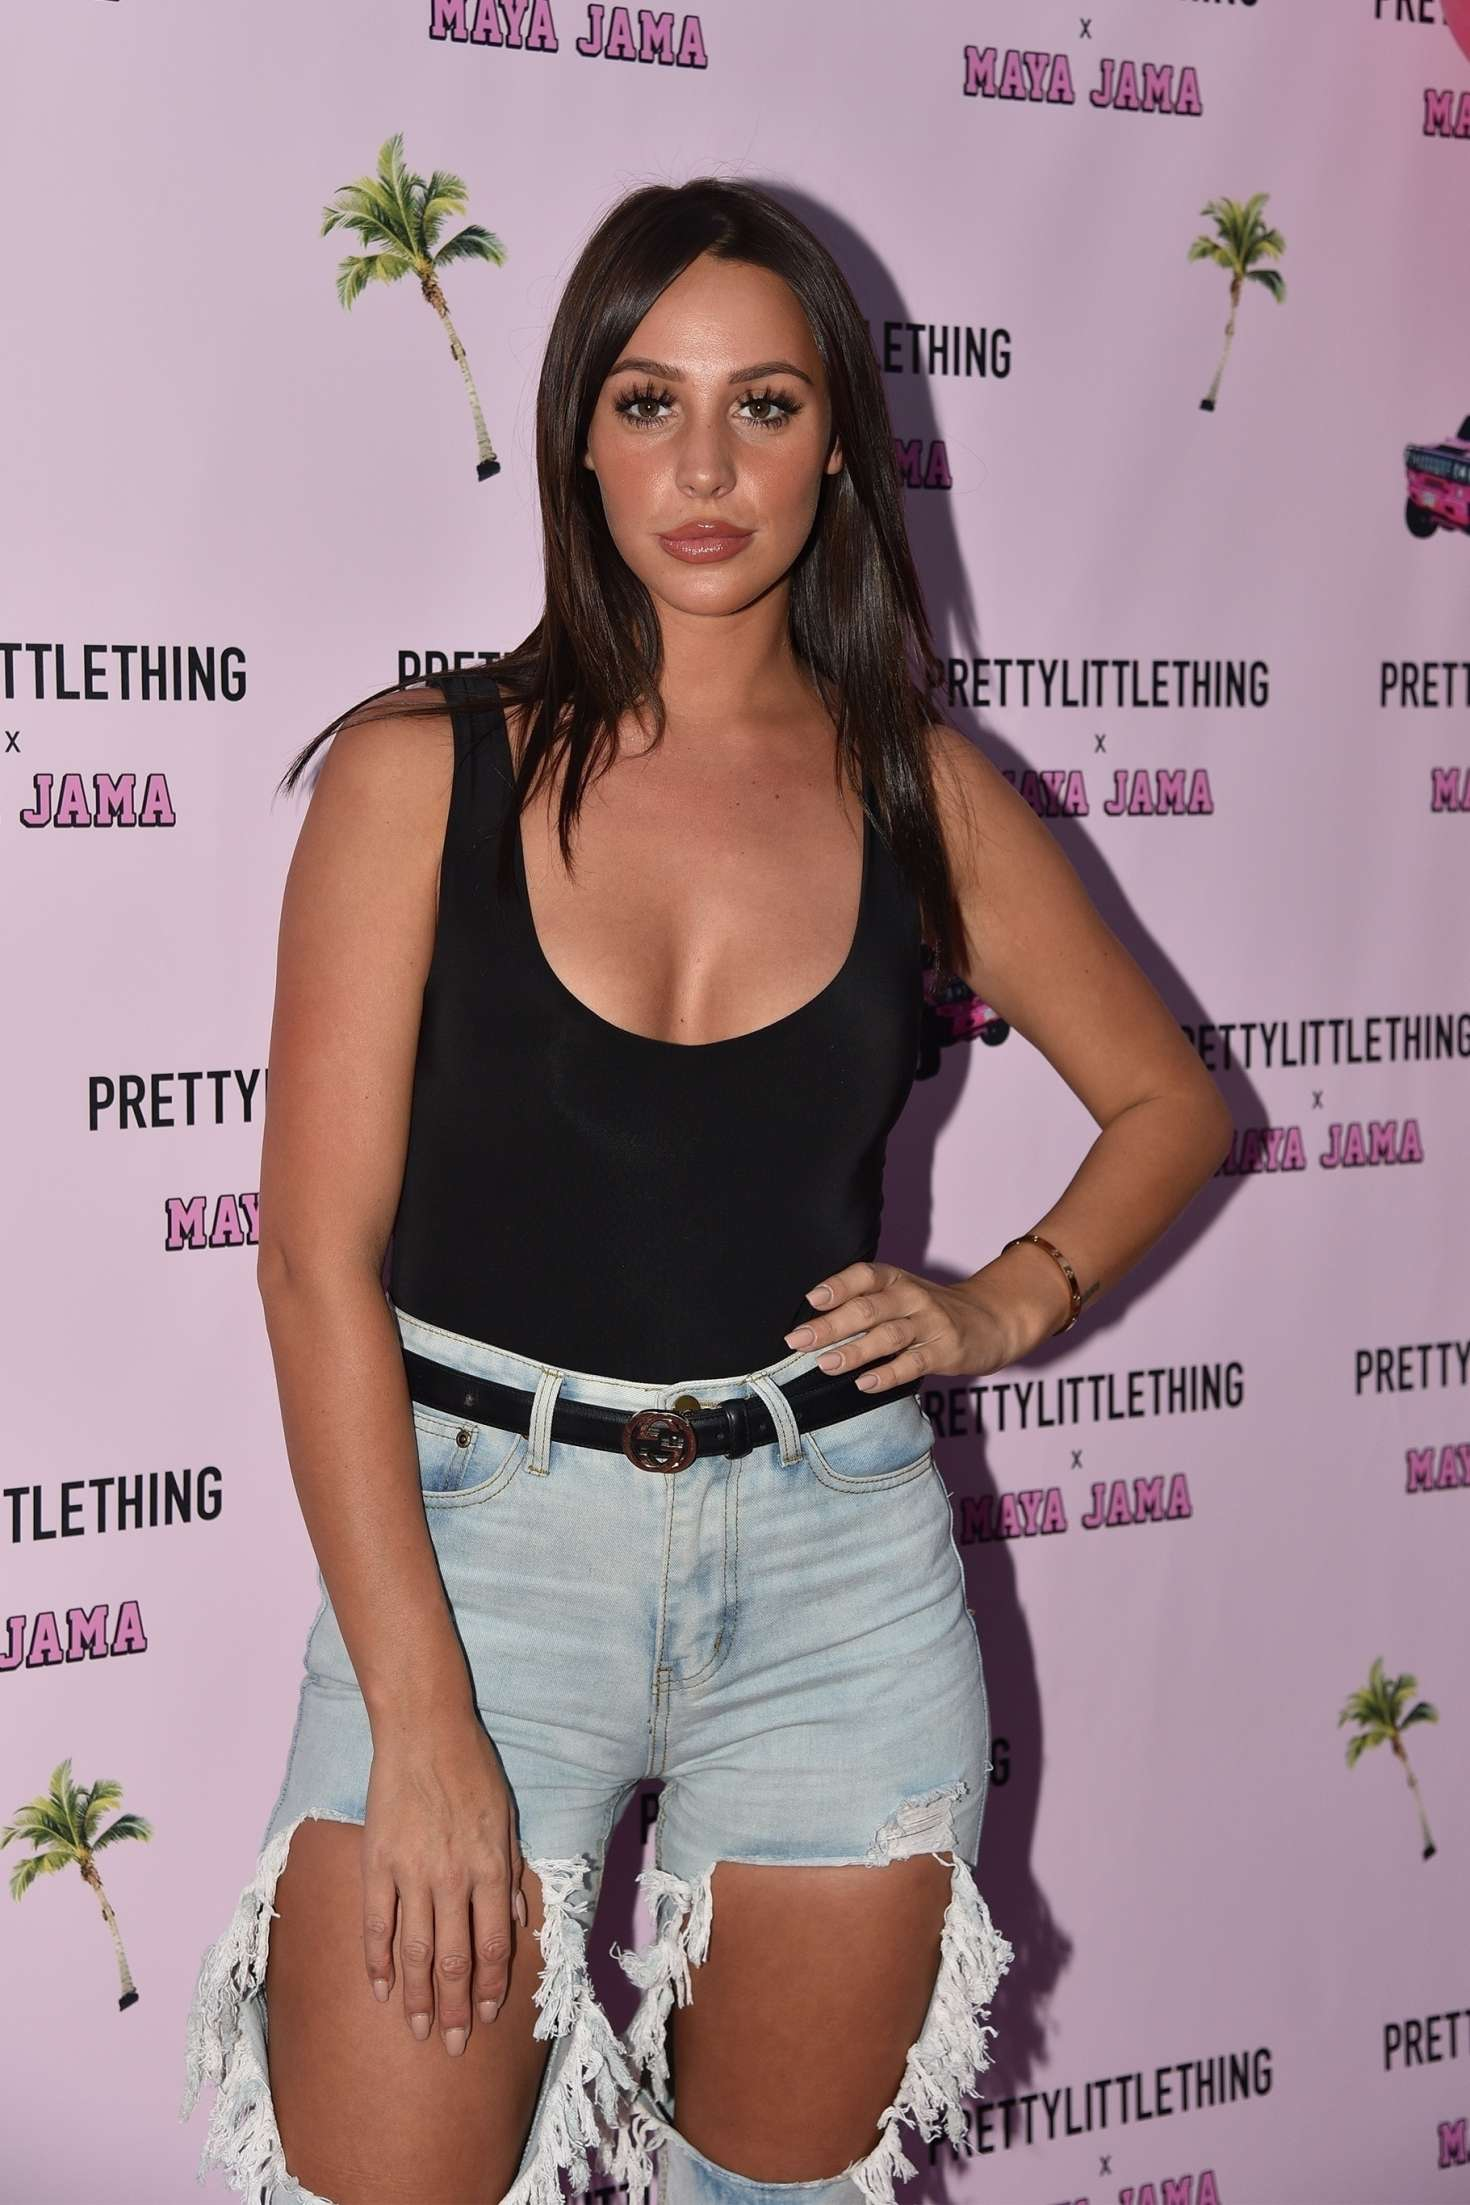 Amber Dowding - PrettyLittleThing x Maya Jama Launch party in London